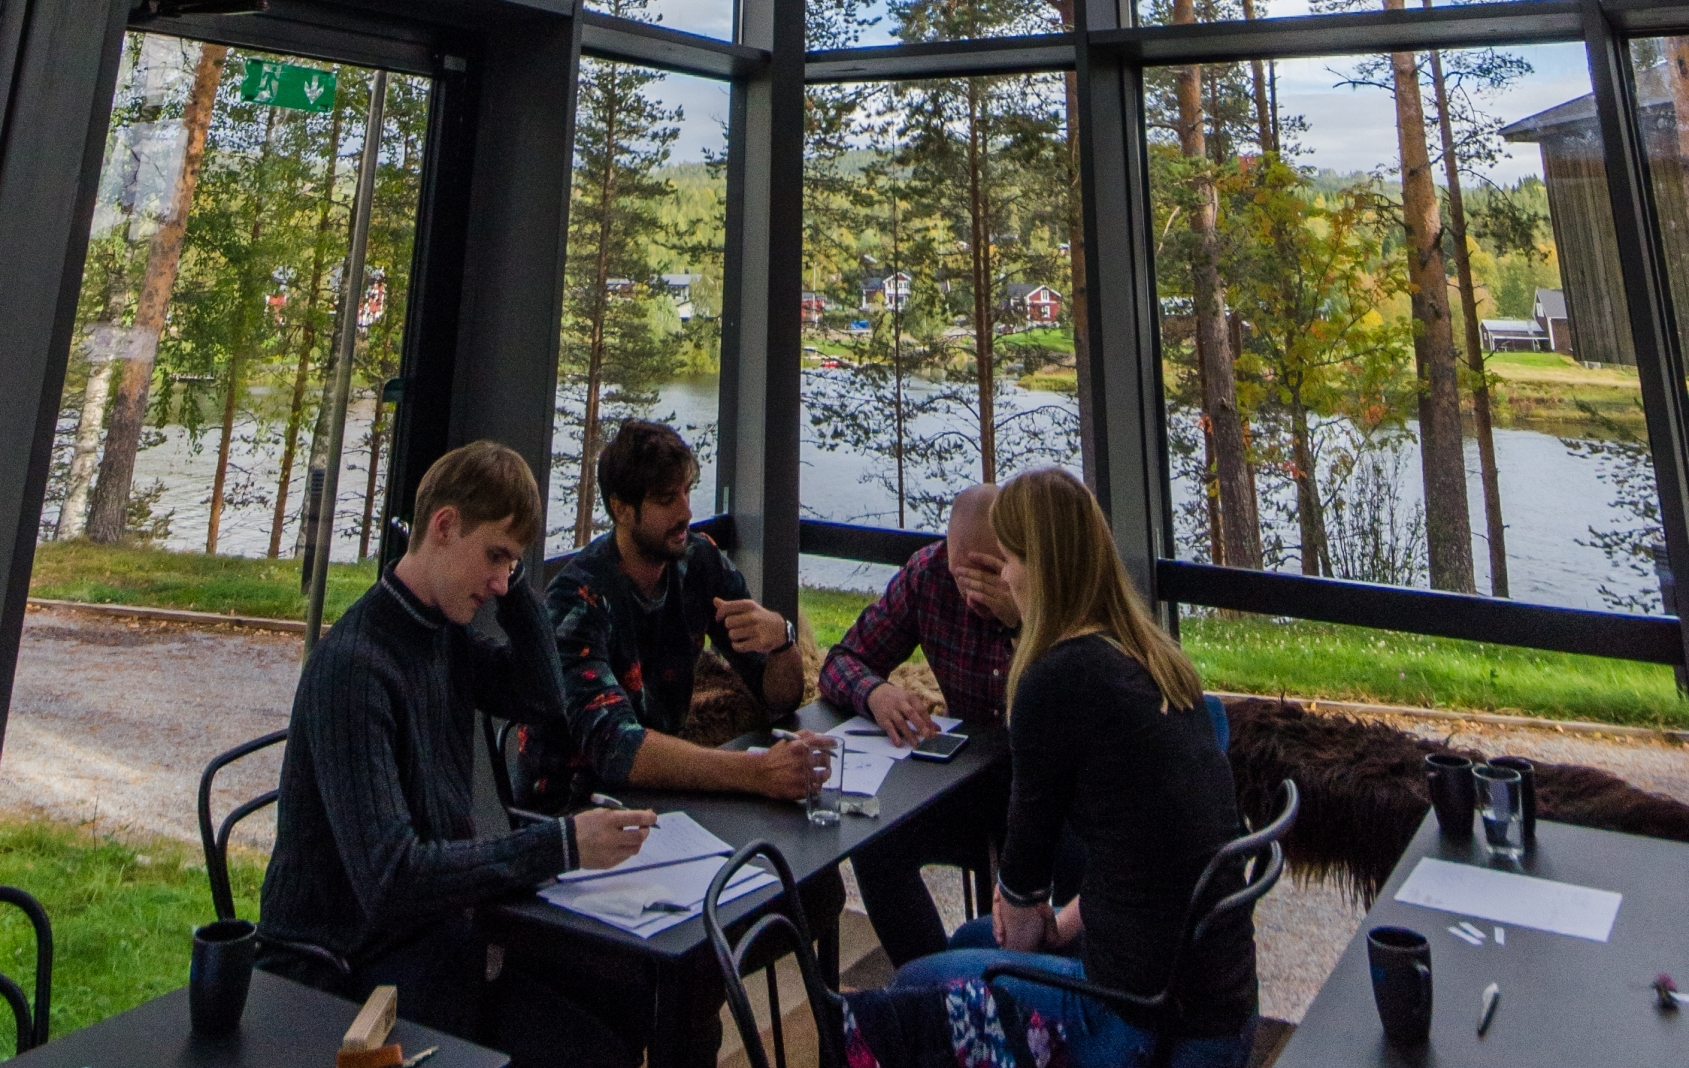 A group of researchers solve a science problem together in a glass building surrounded by trees, next to a river